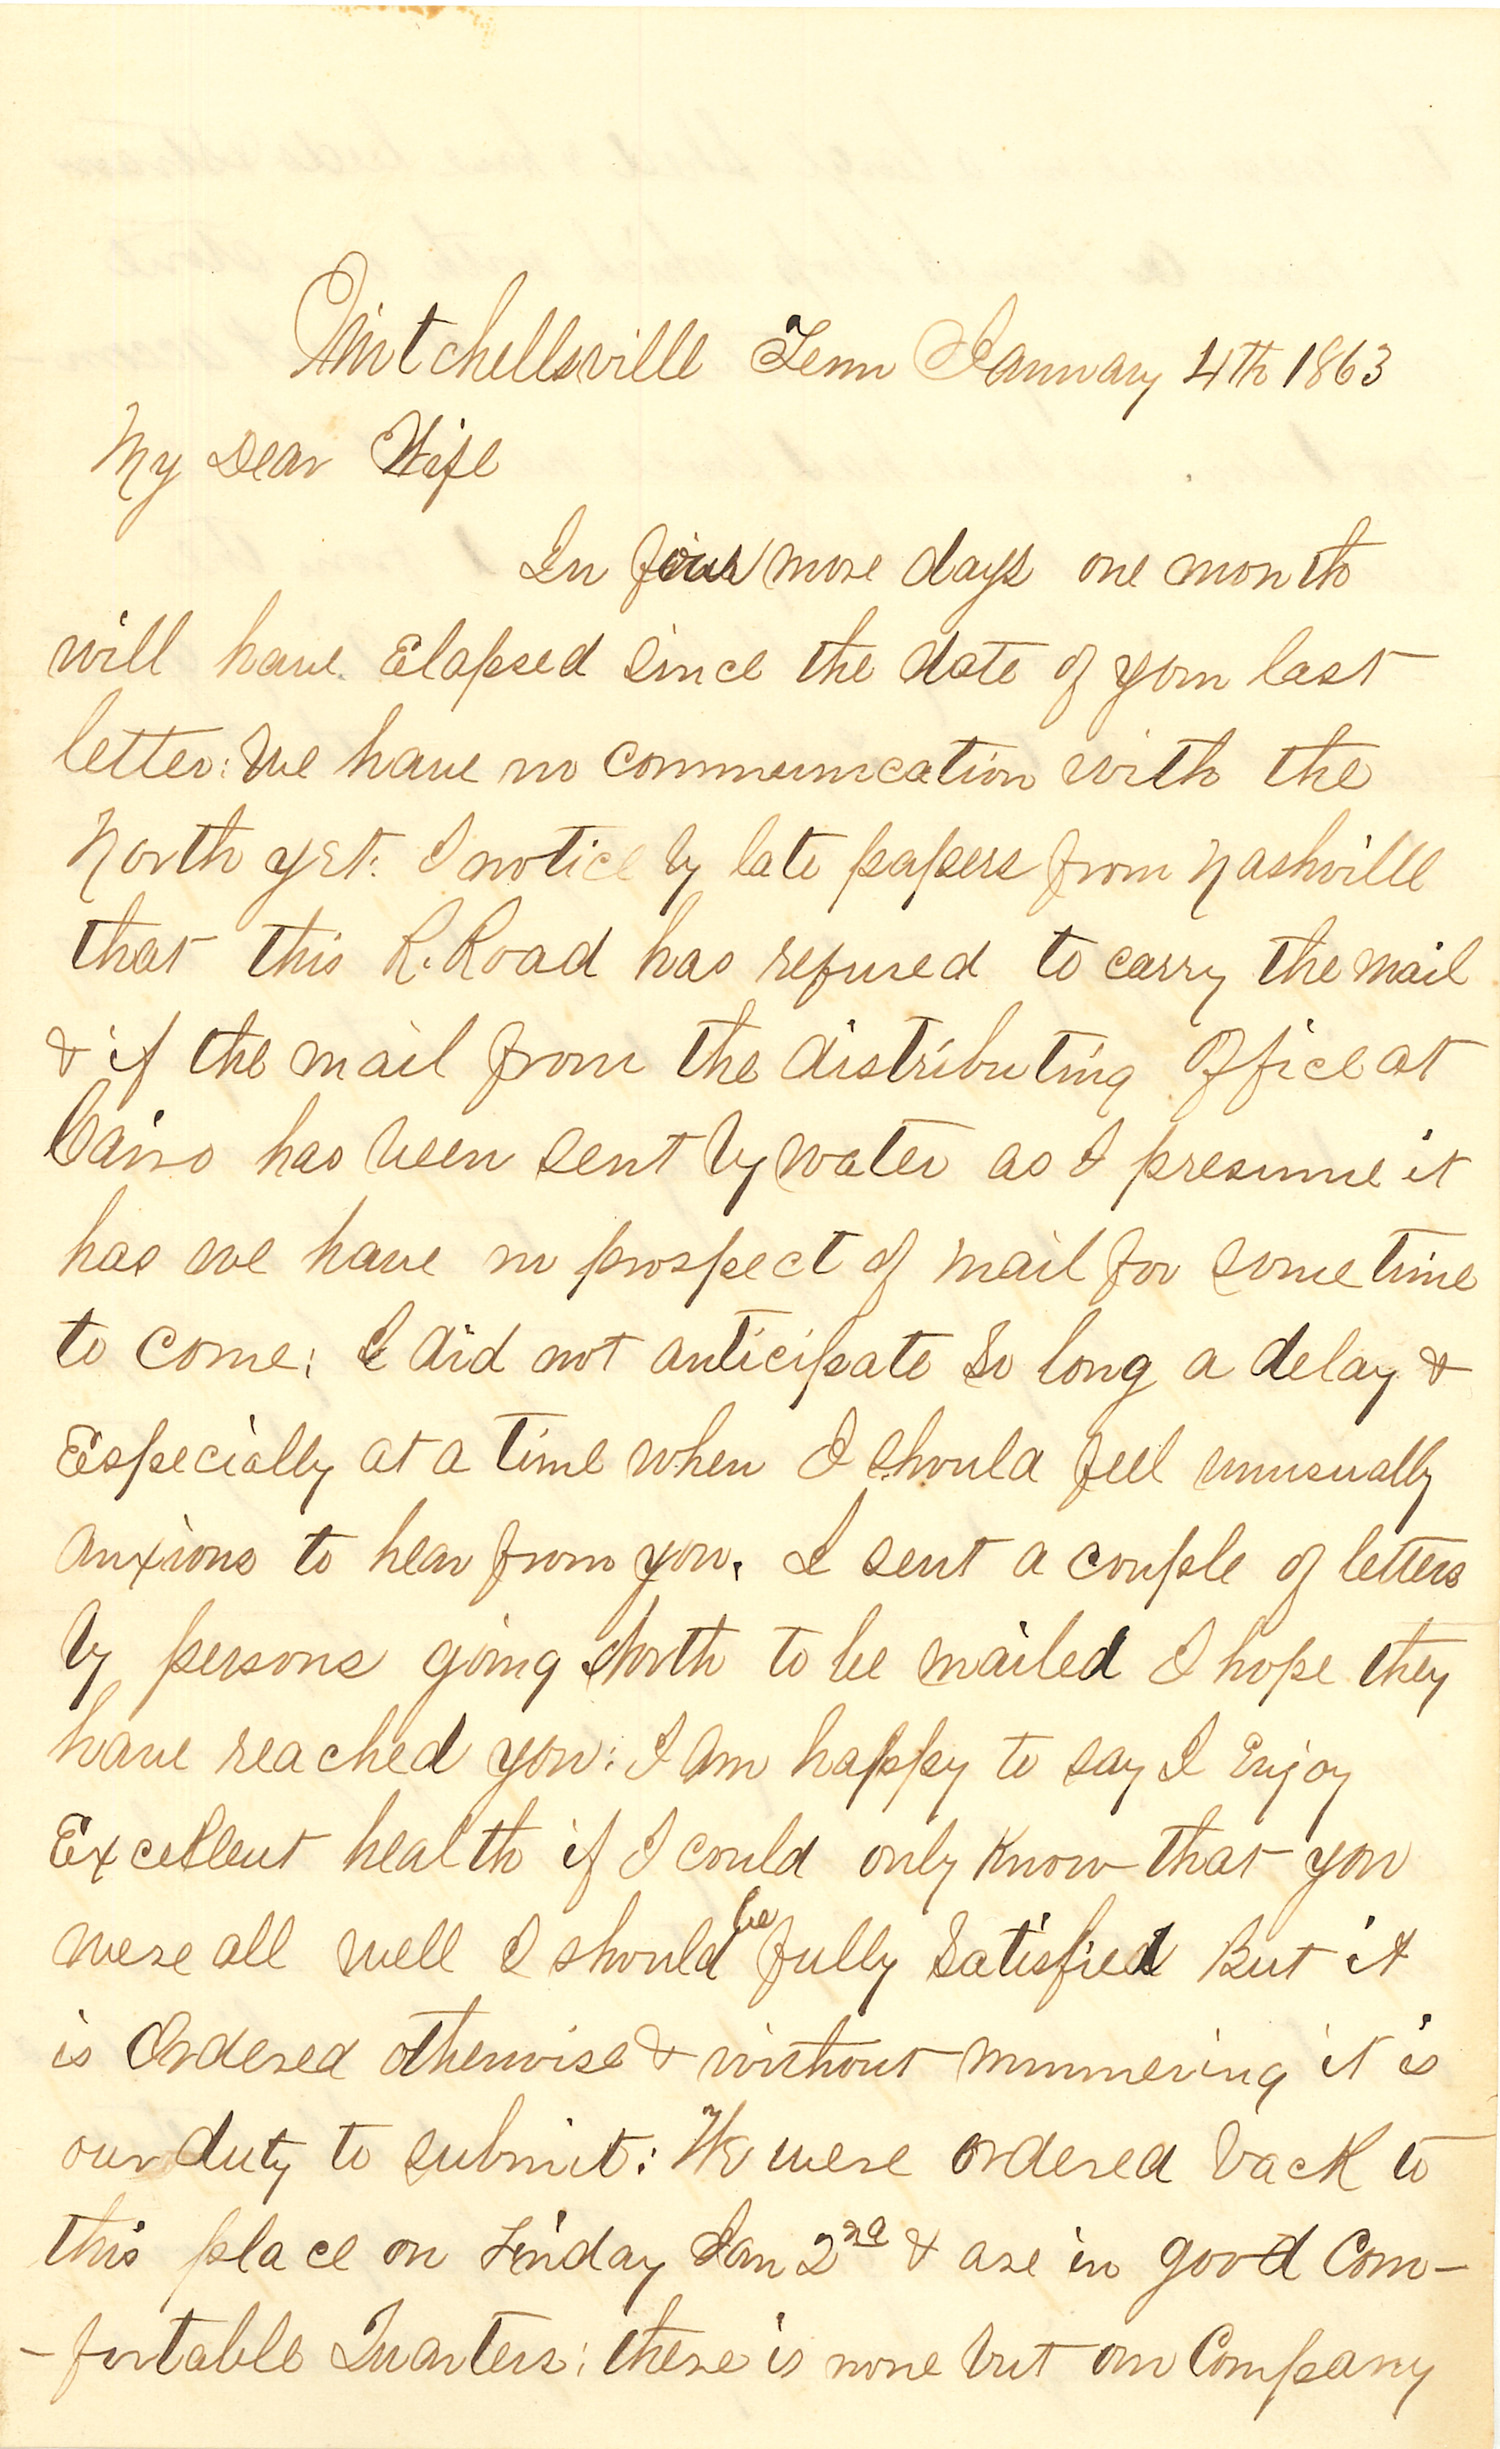 Joseph Culver Letter, January 4, 1863, Page 1